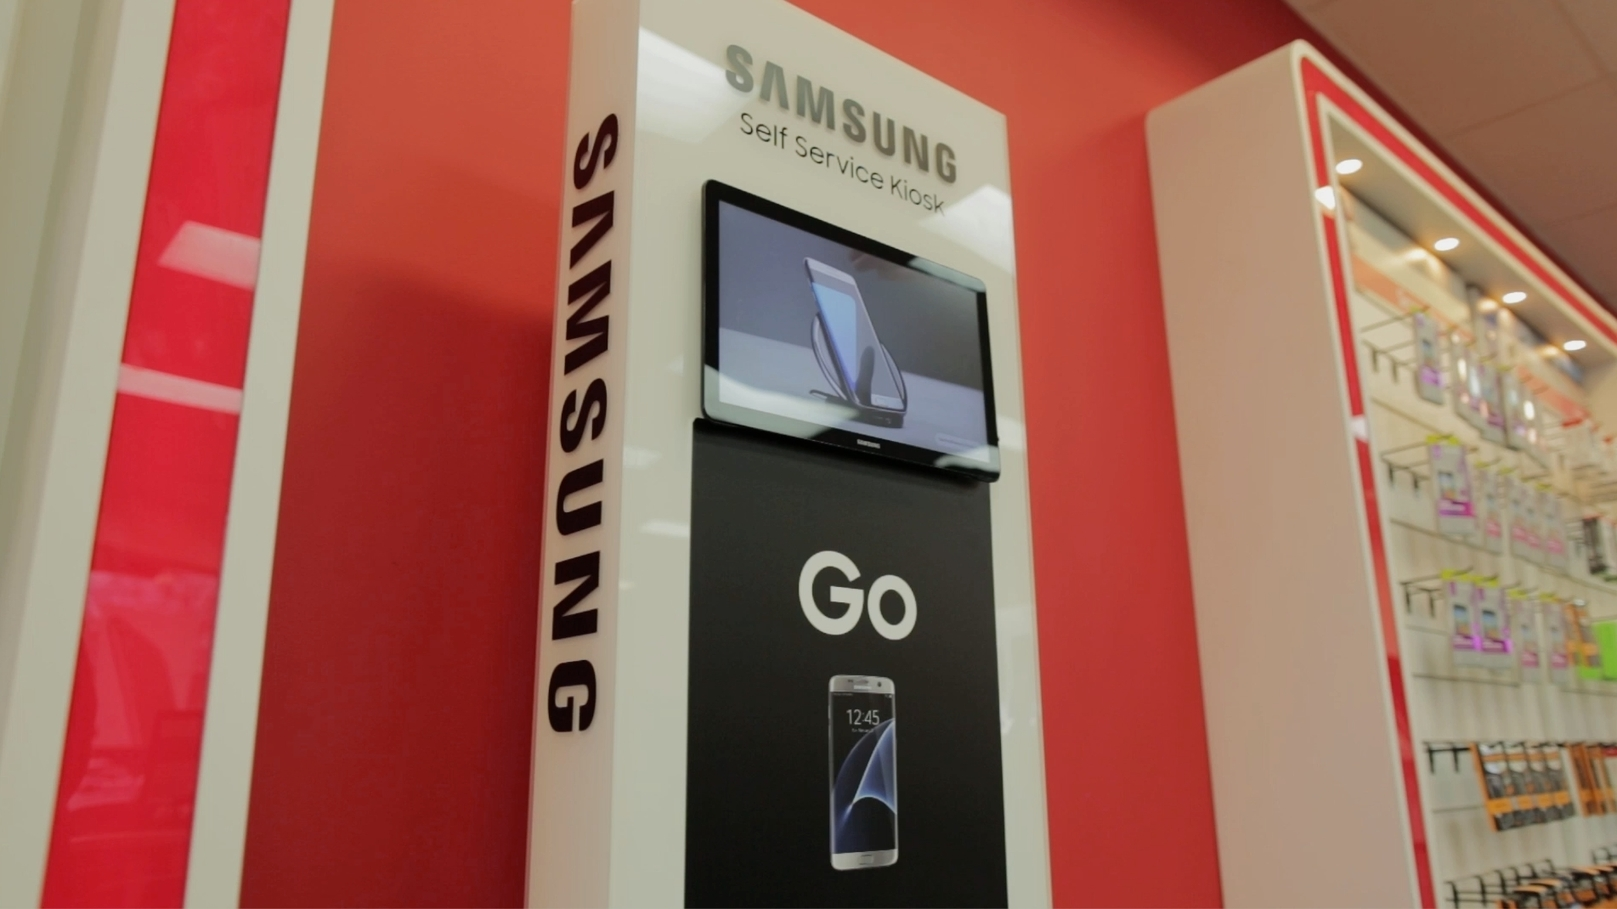 hight resolution of samsung partners with iqmetrix to deliver endless aisle kiosk business wire